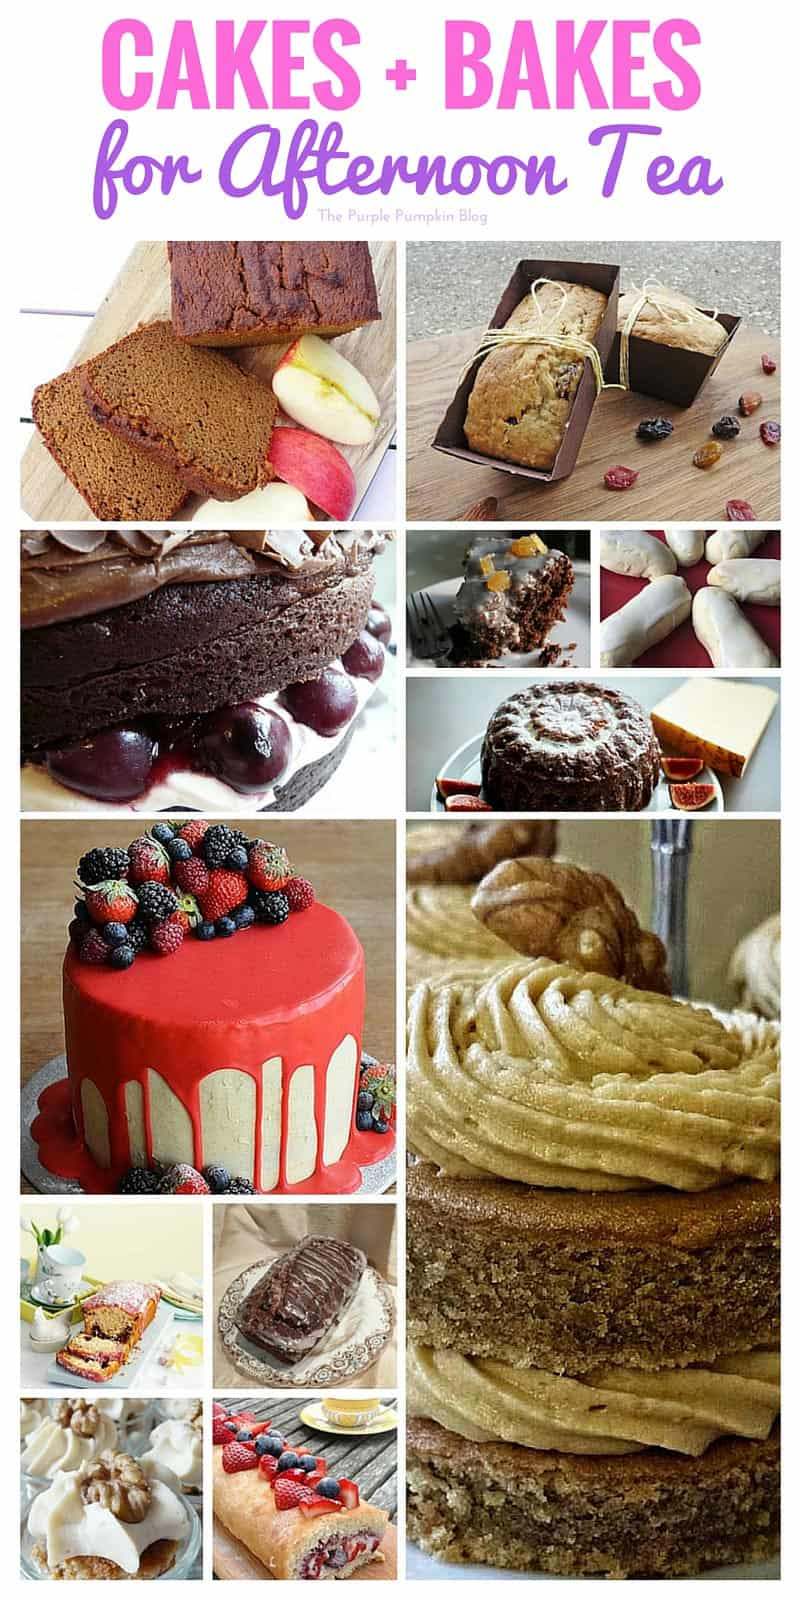 Cakes + Bakes for Afternoon Tea + 38 more delicious afternoon tea recipes to try.